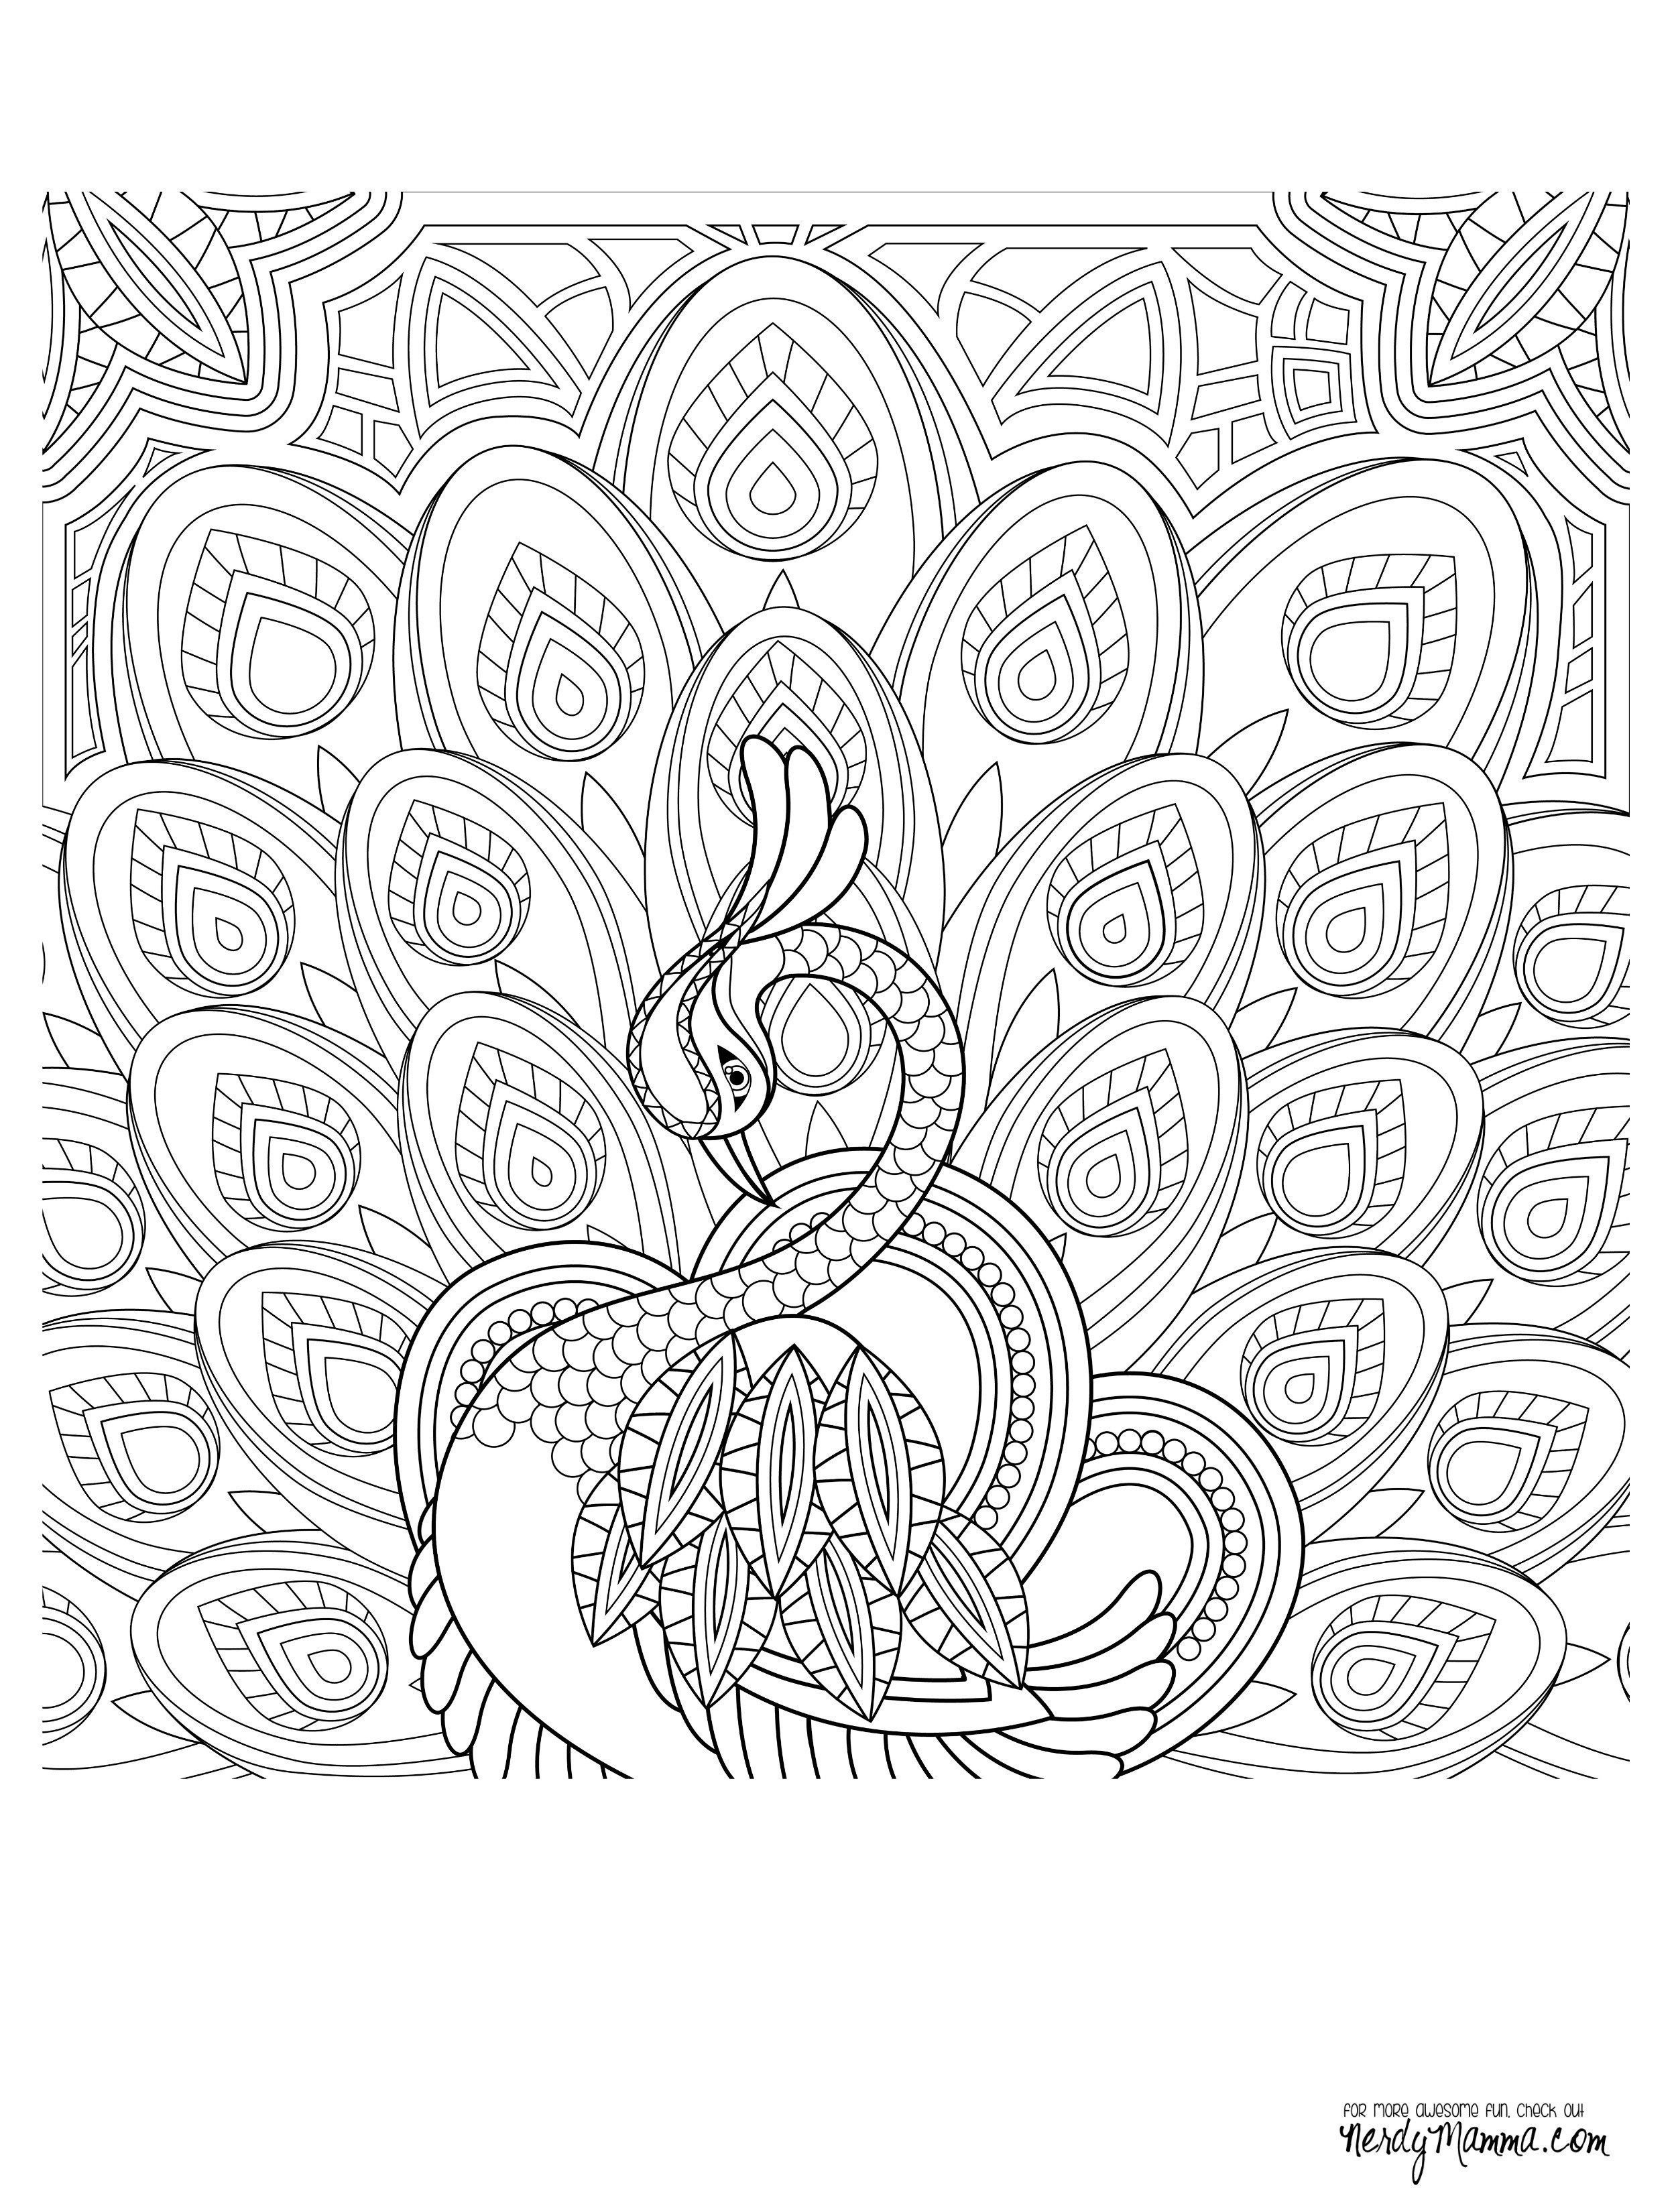 Bees Coloring Pages  to Print 7o - Free For kids